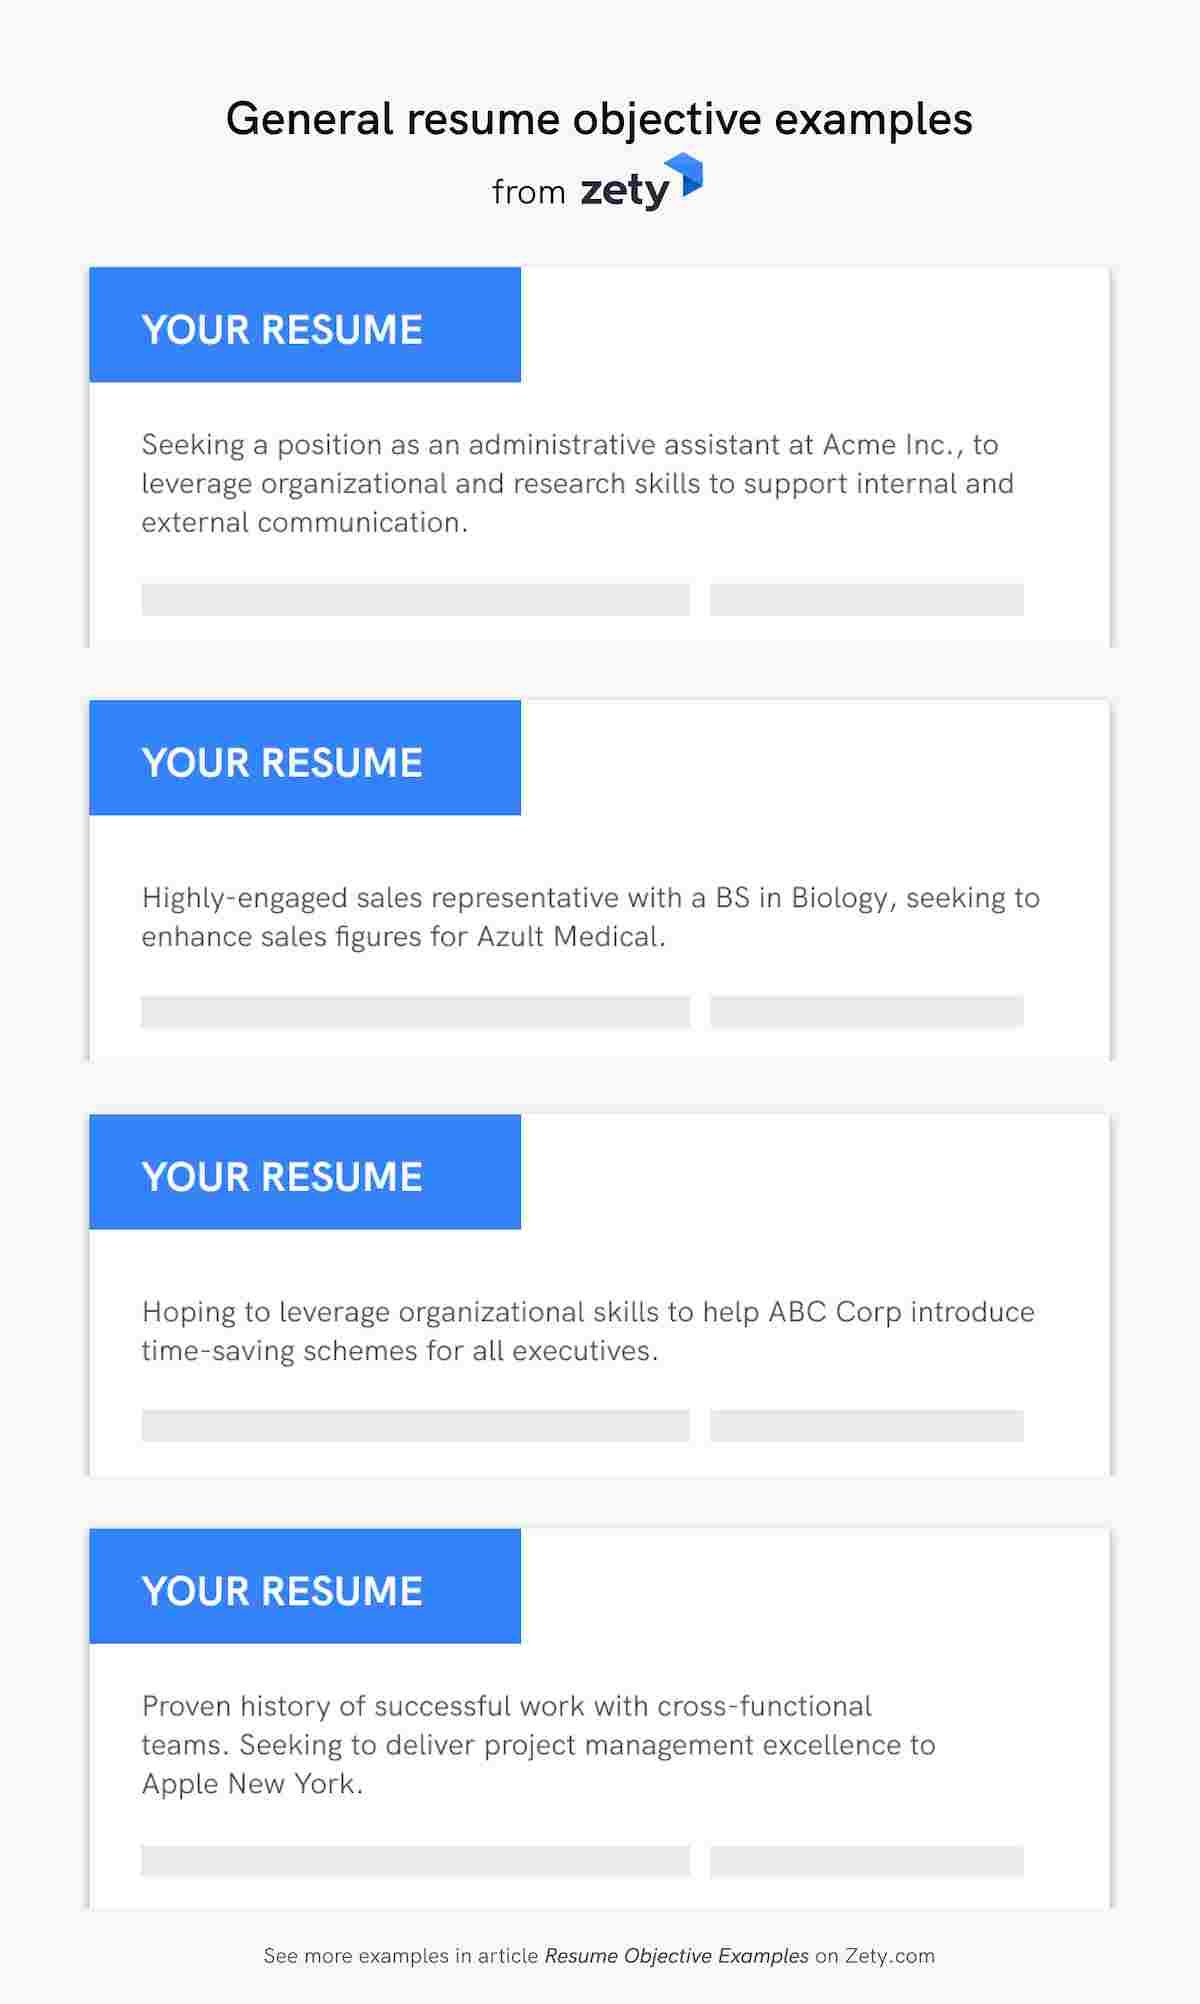 resume objective examples career objectives for all jobs food services general writing Resume Resume Objective Examples For Food Services